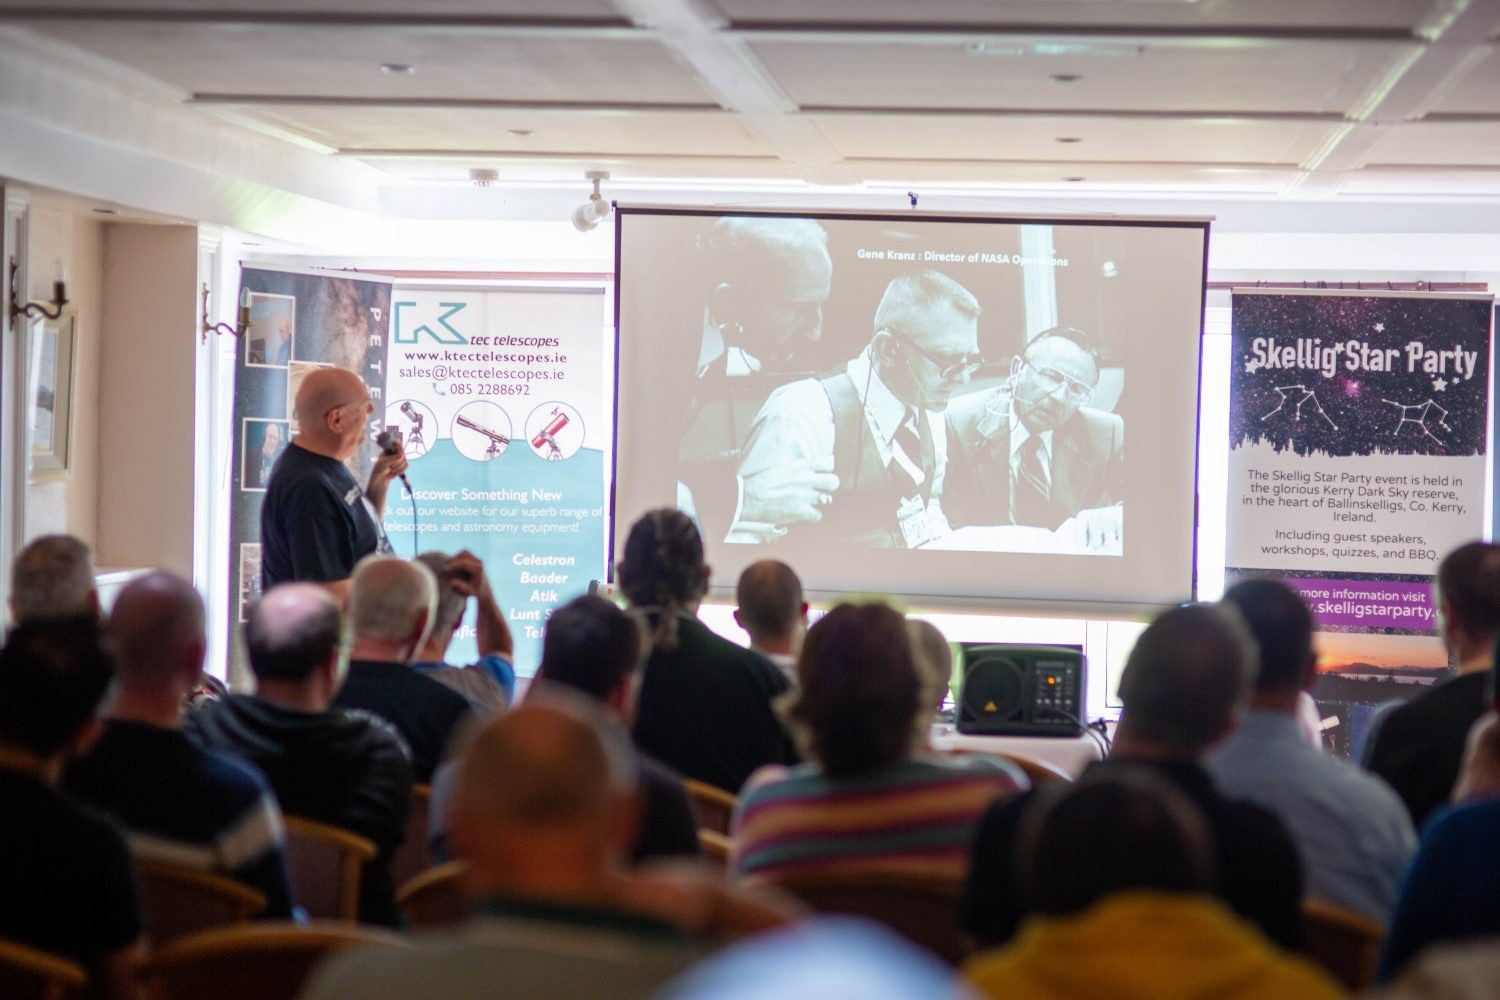 Pete Williamson during his talk on the Apollo missions at Skellig Star Party 2019. Credit: Roy Stewart